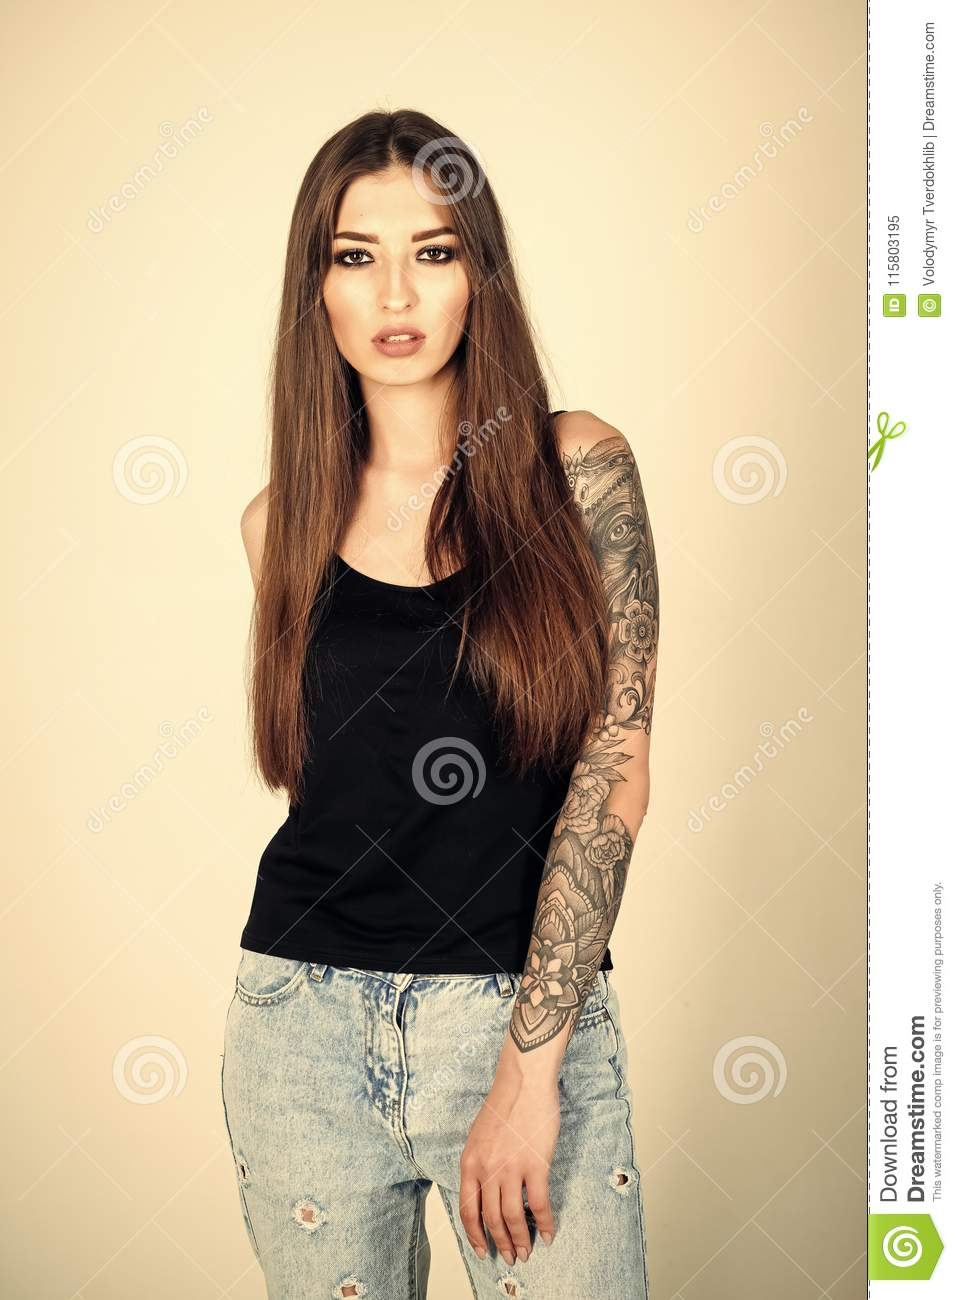 Woman With Tattoo Arm In Jeans Fashion Stock Image Image Of Punk